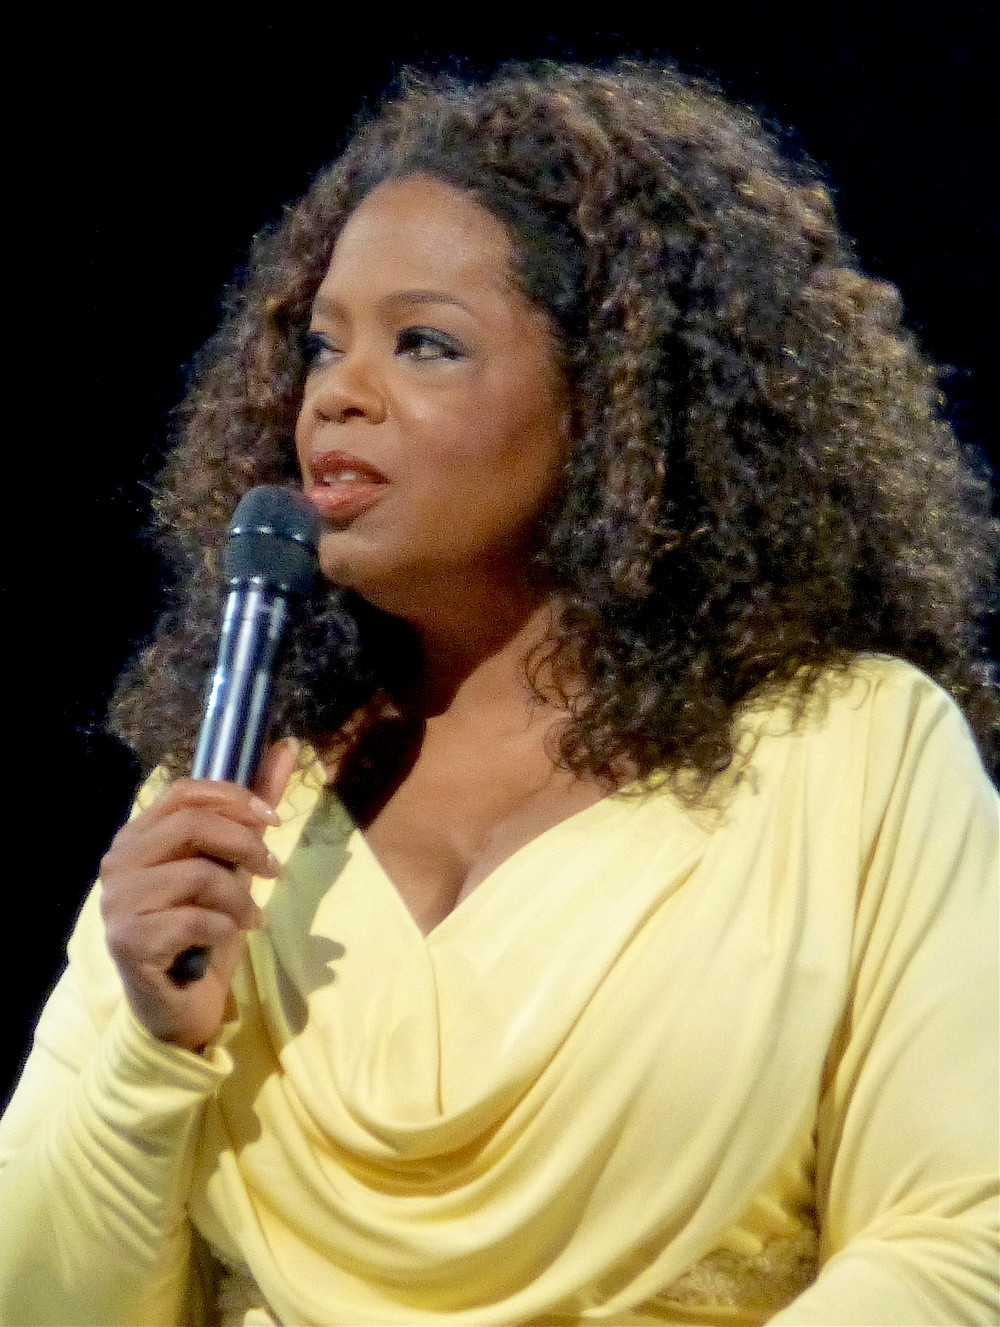 Numerology Oprah Winfrey - lynsreadings.com